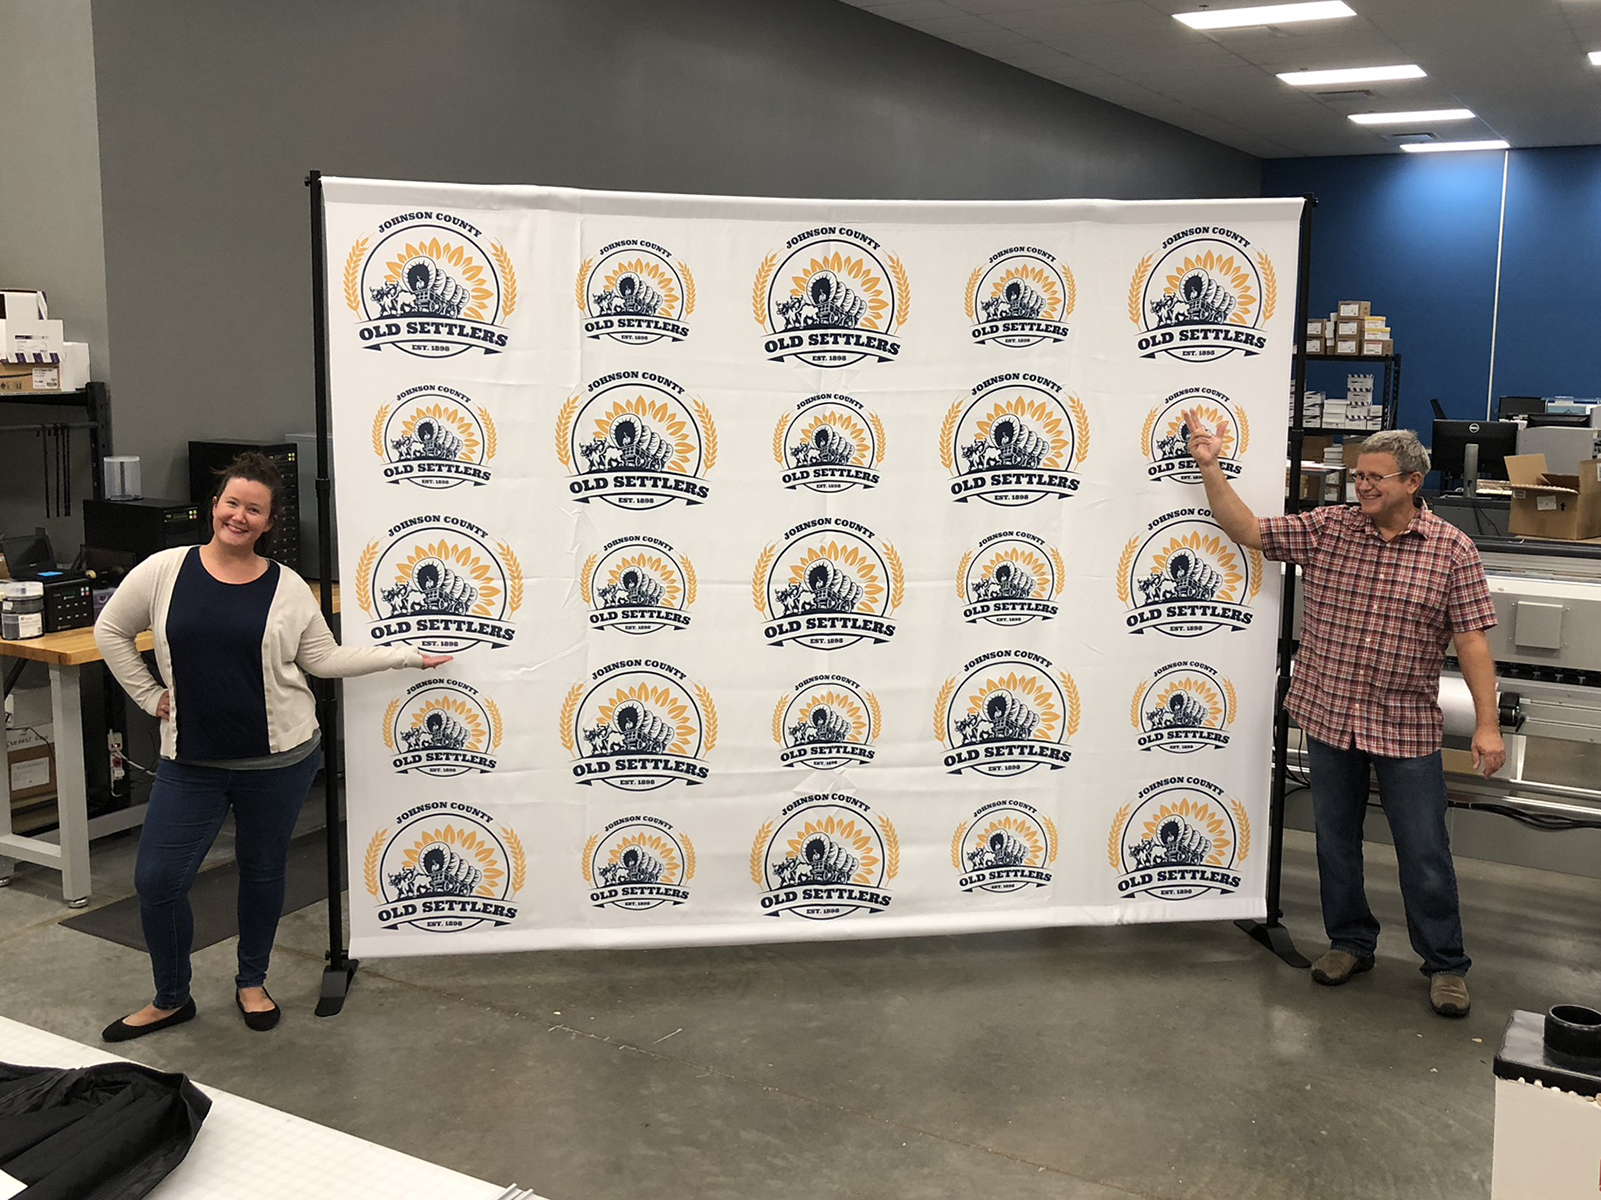 Step and repeat banner backdrop showcasing the logo for Old Settlers Day